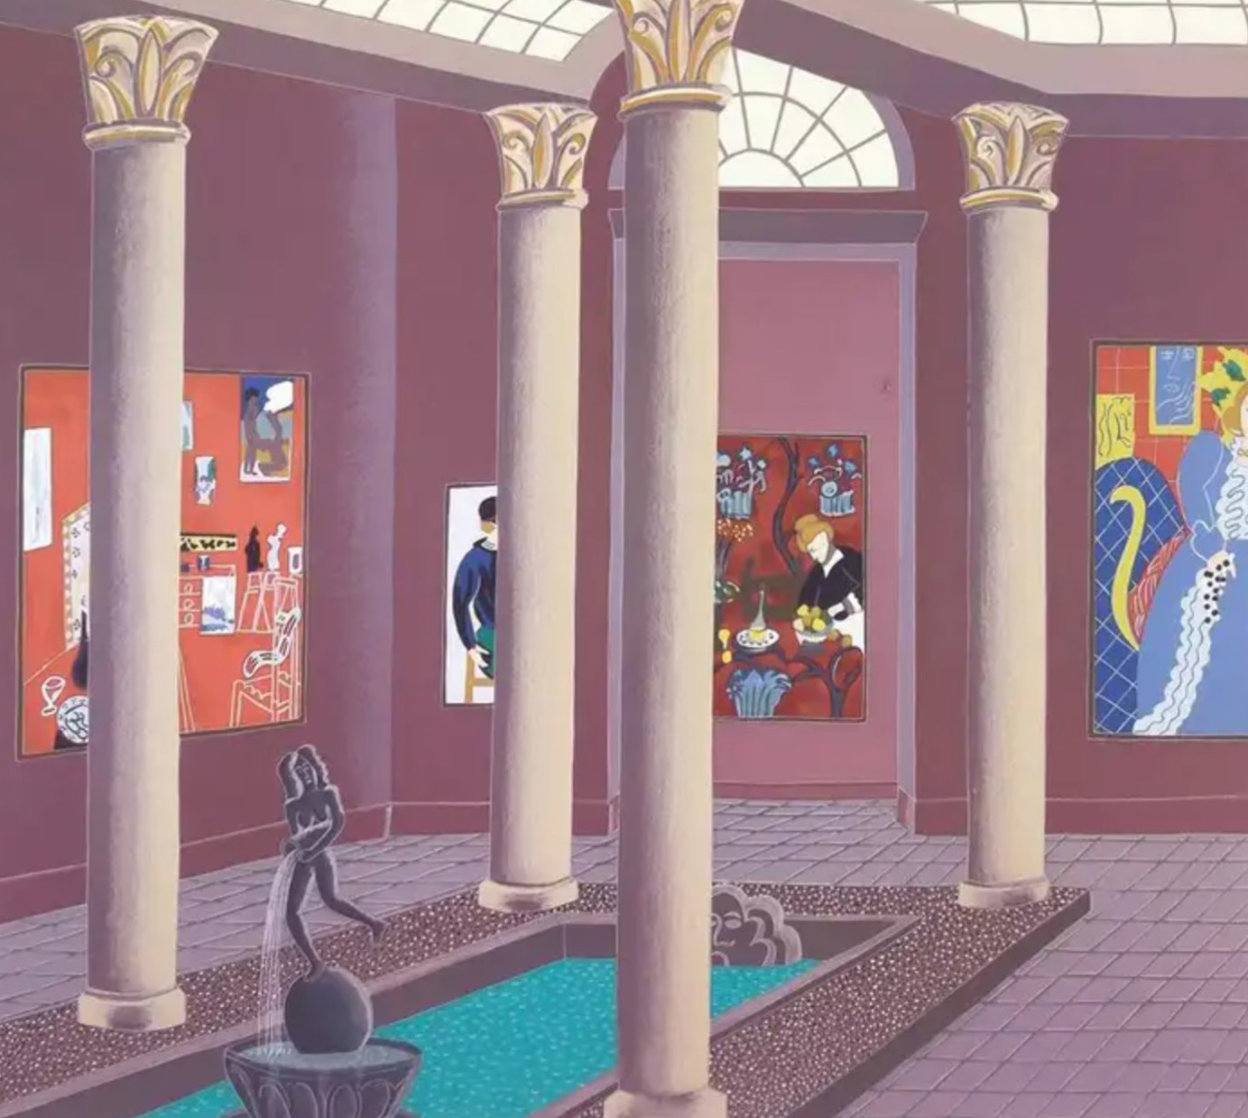 Matisse Gallery 1982 Limited Edition Print by Thomas Frederick McKnight